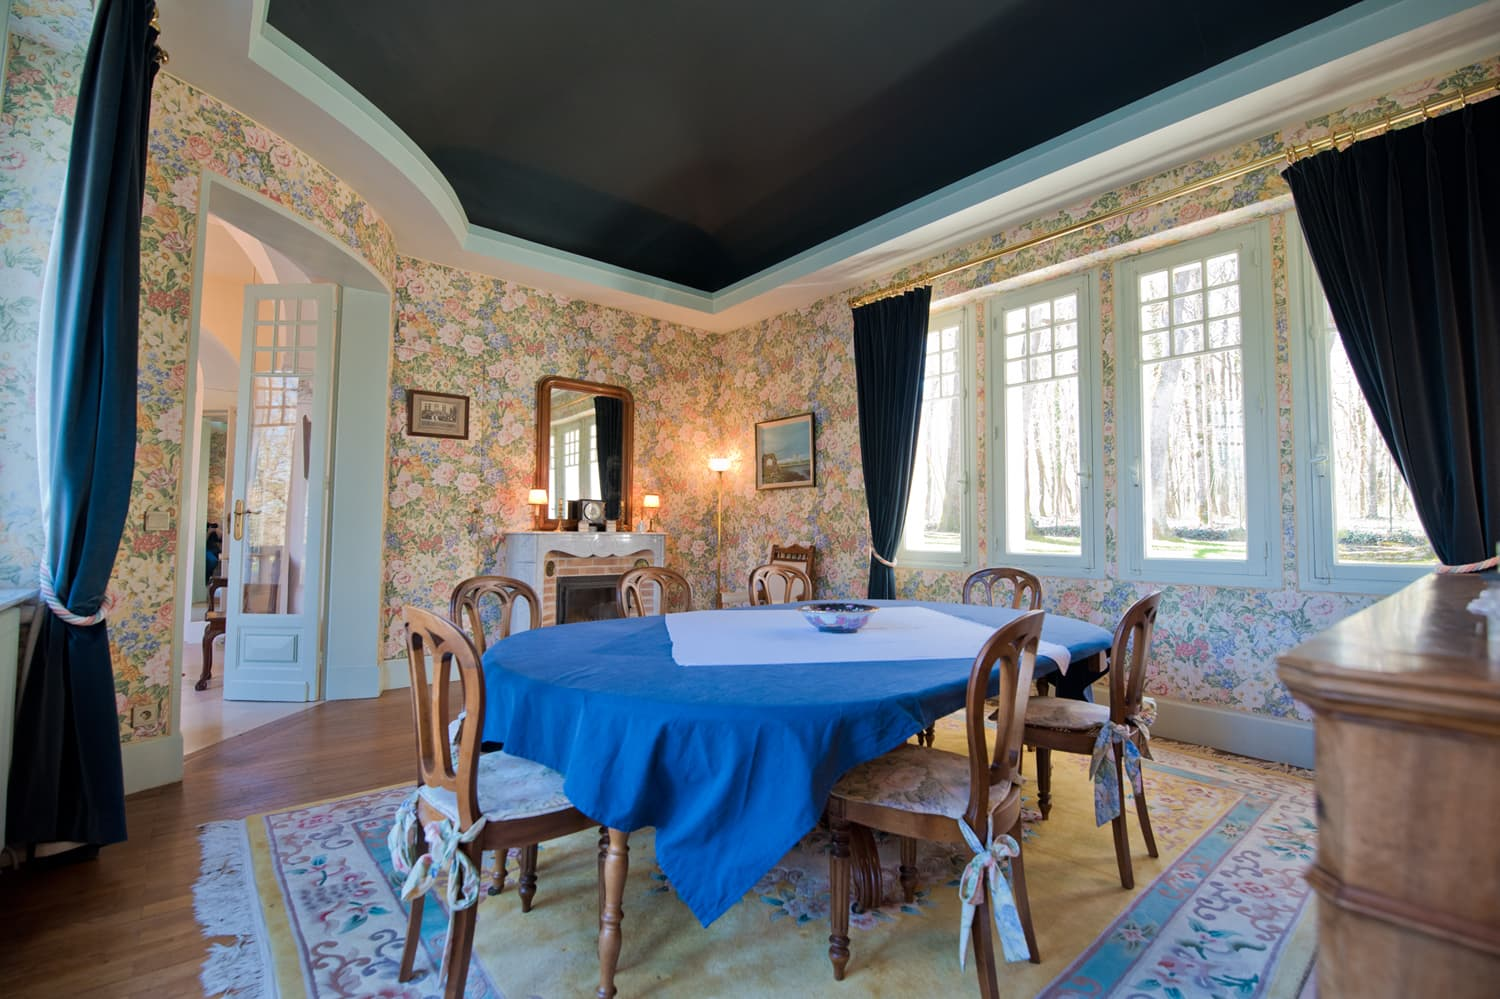 Dining room in holiday château